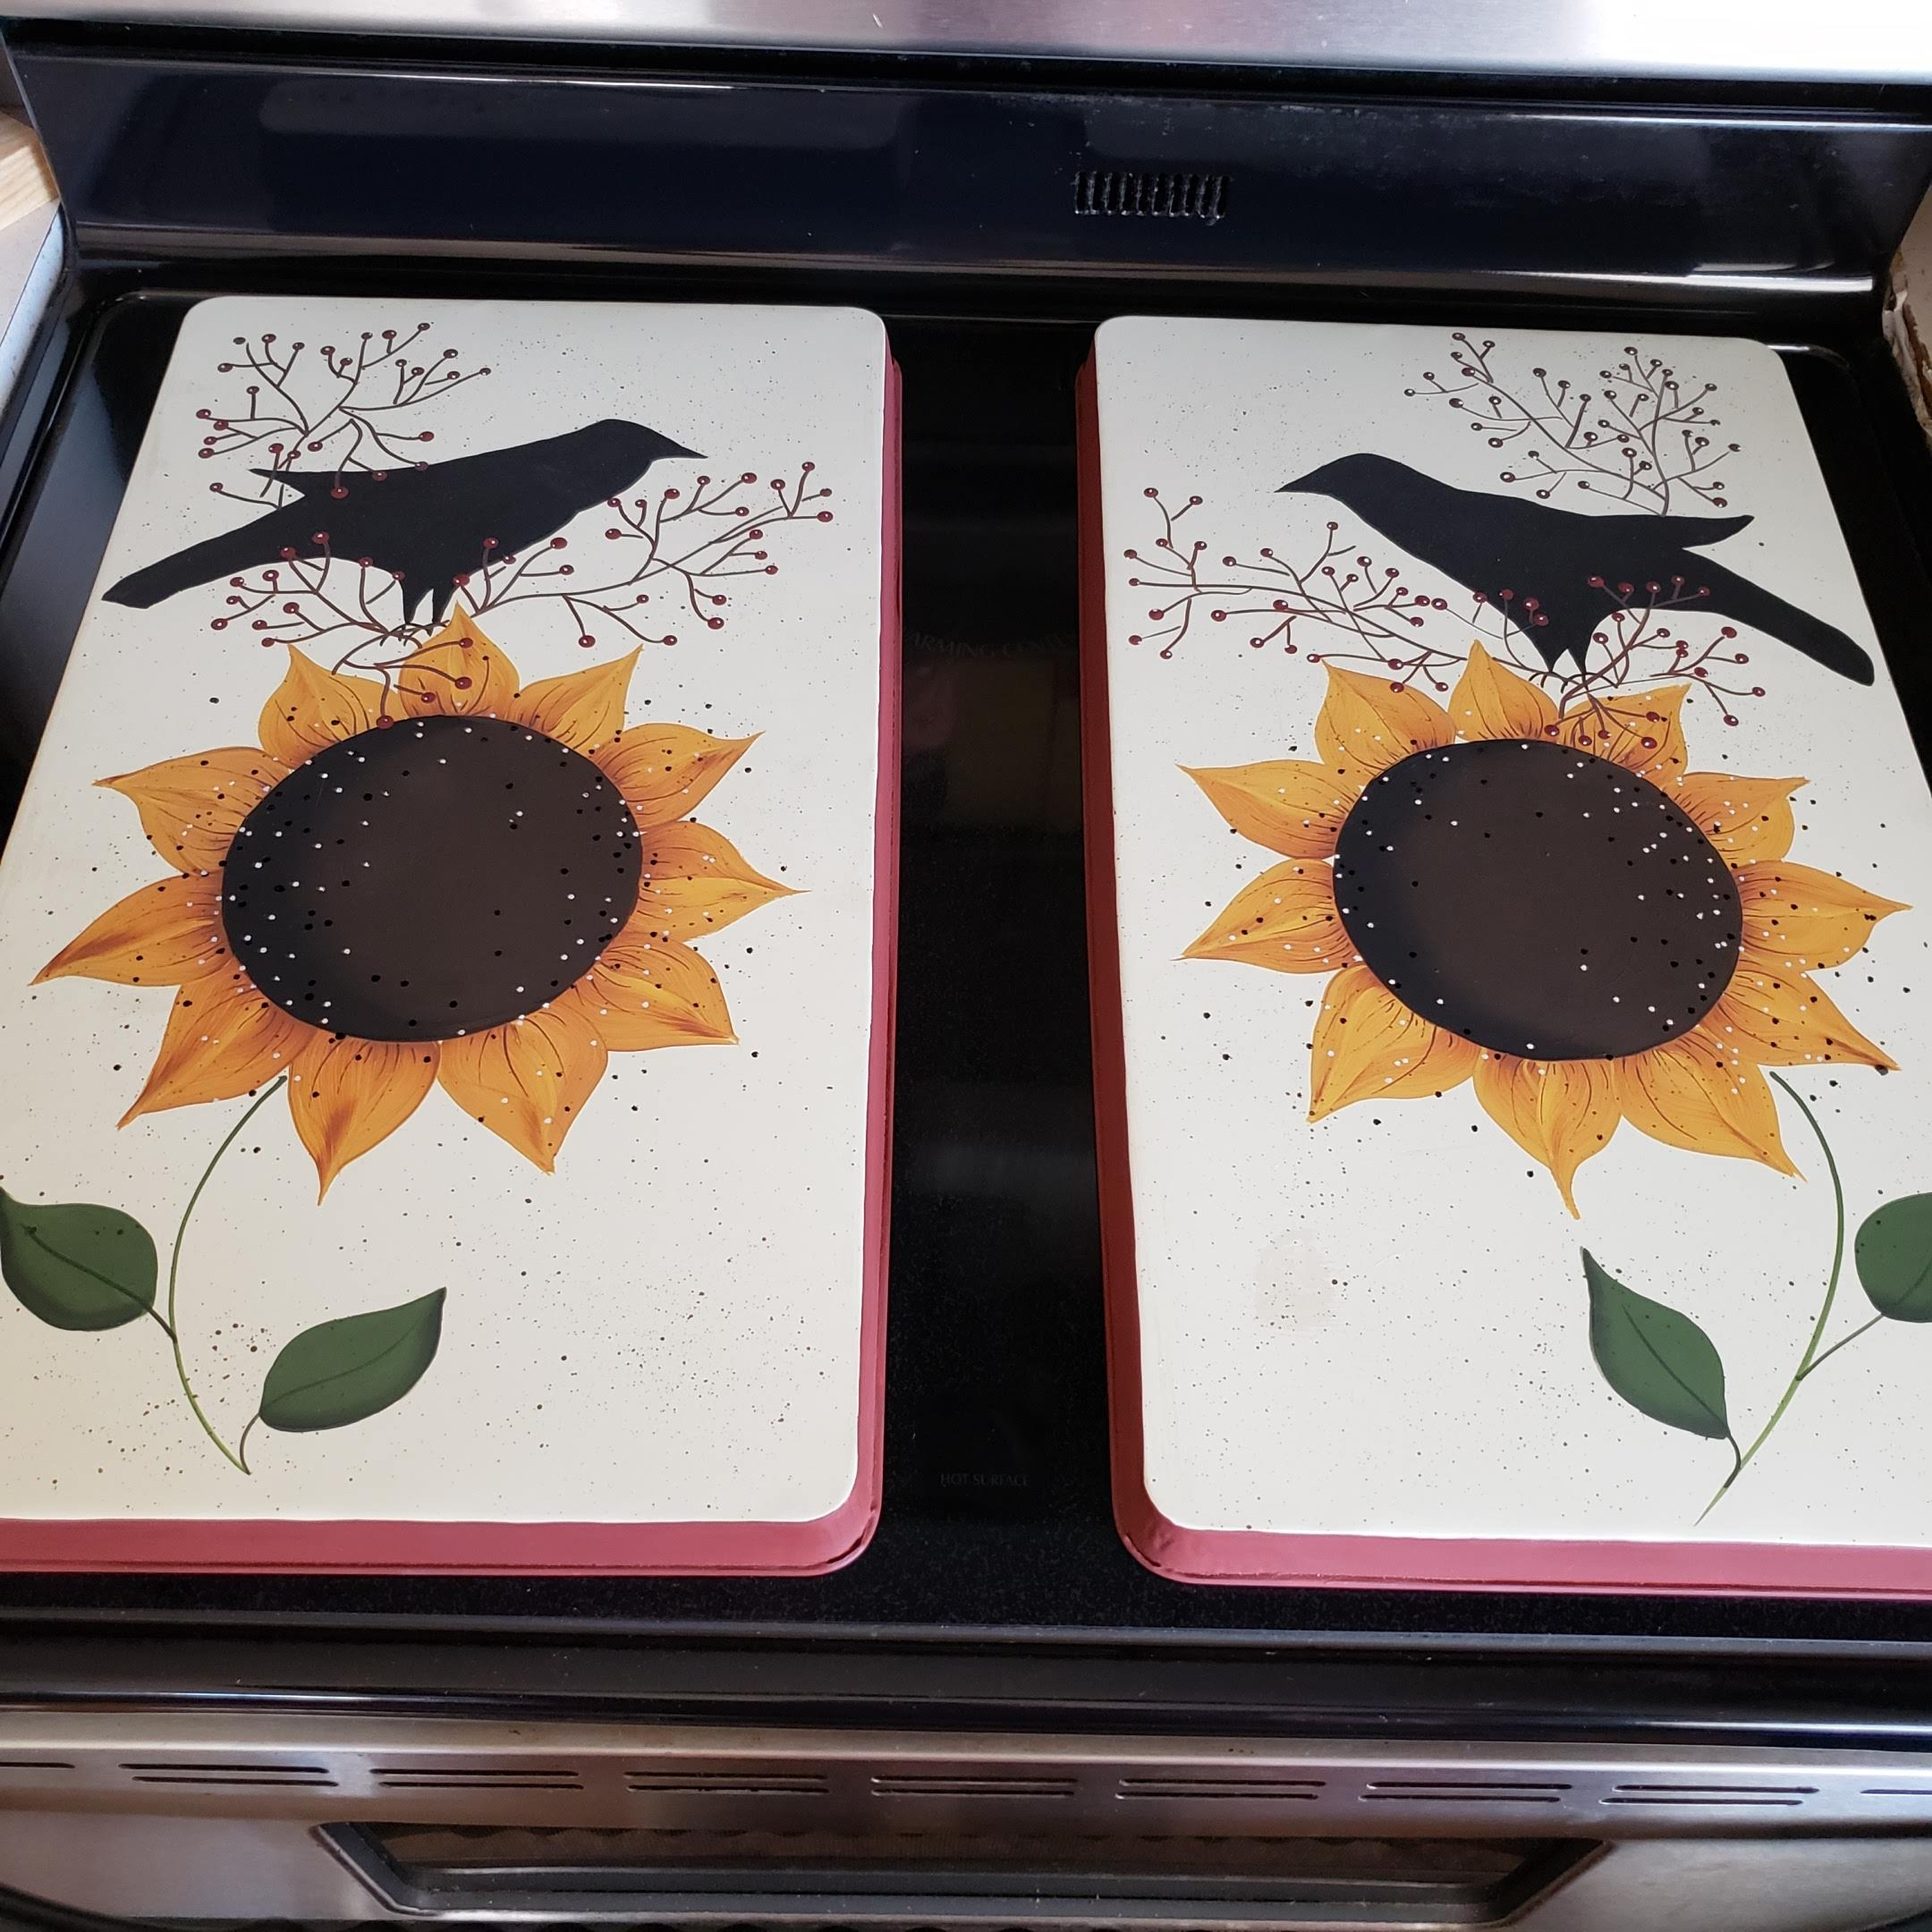 Primitive Country Decor Sunflower Crow Farmhouse Stainless Steel Stove Burner Cover Set of 2